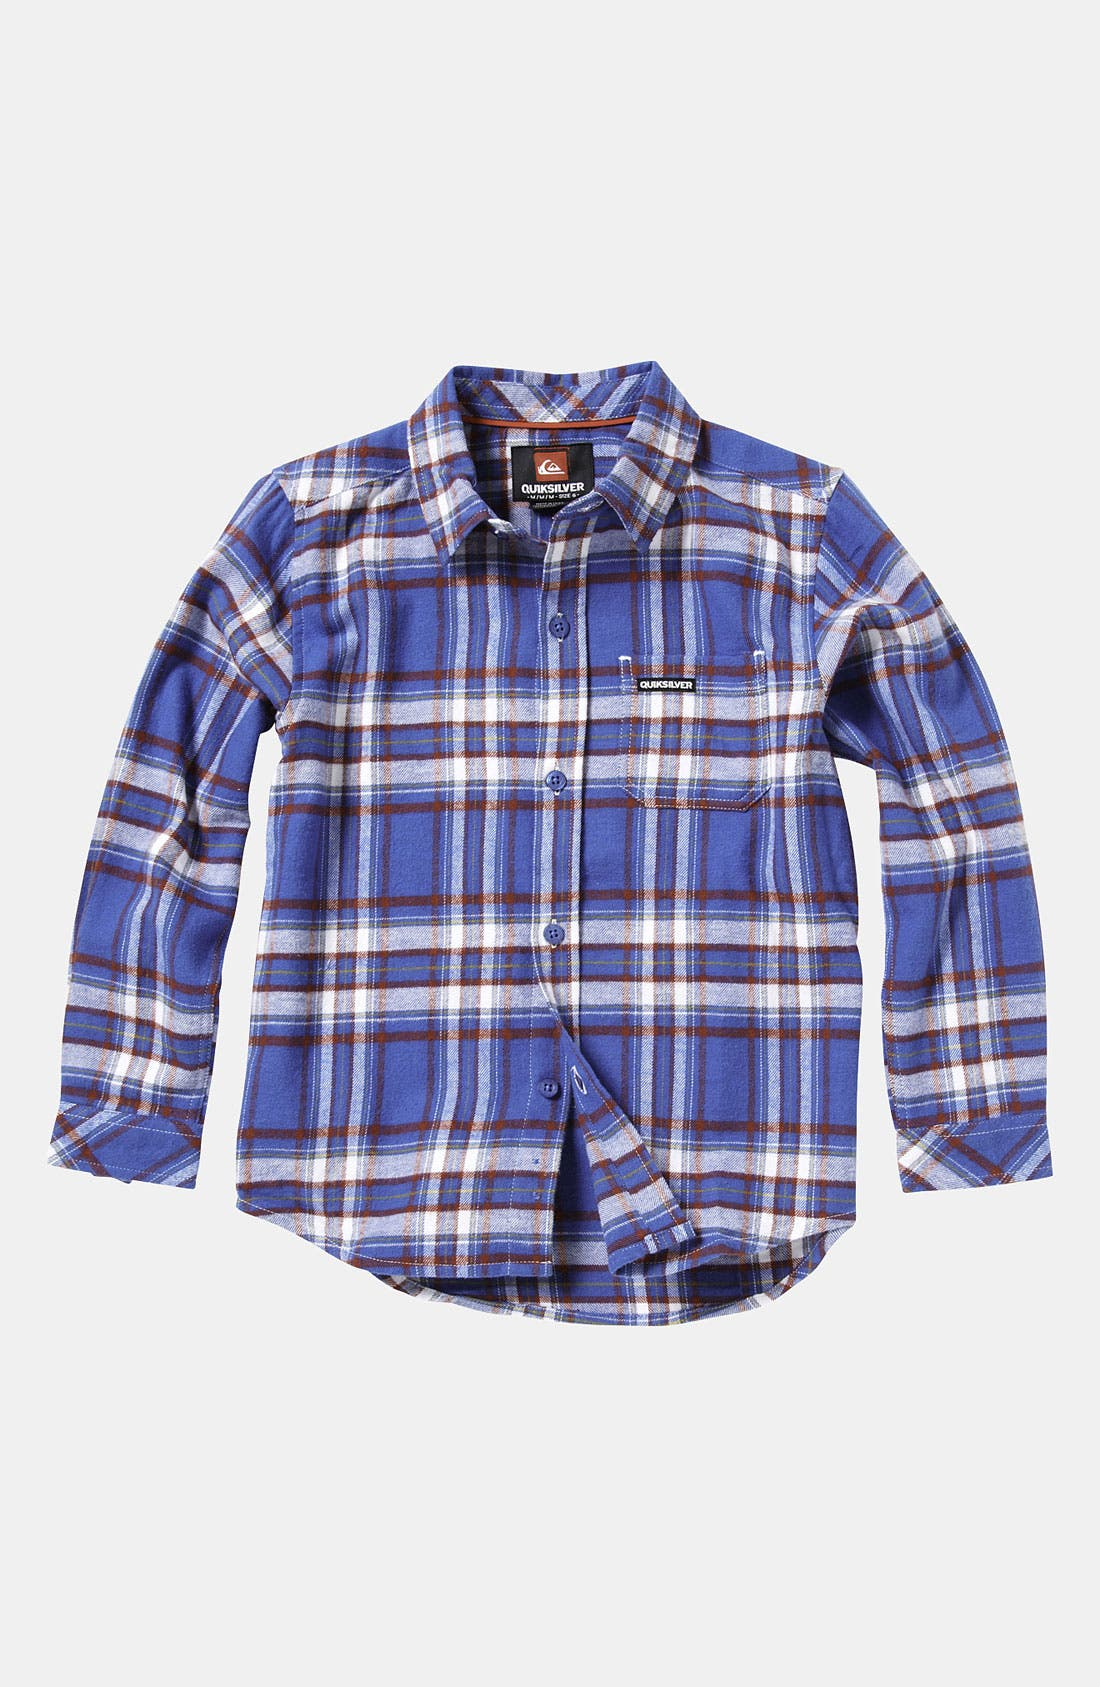 Main Image - Quiksilver 'Bunga Bunga' Woven Shirt (Little Boys)